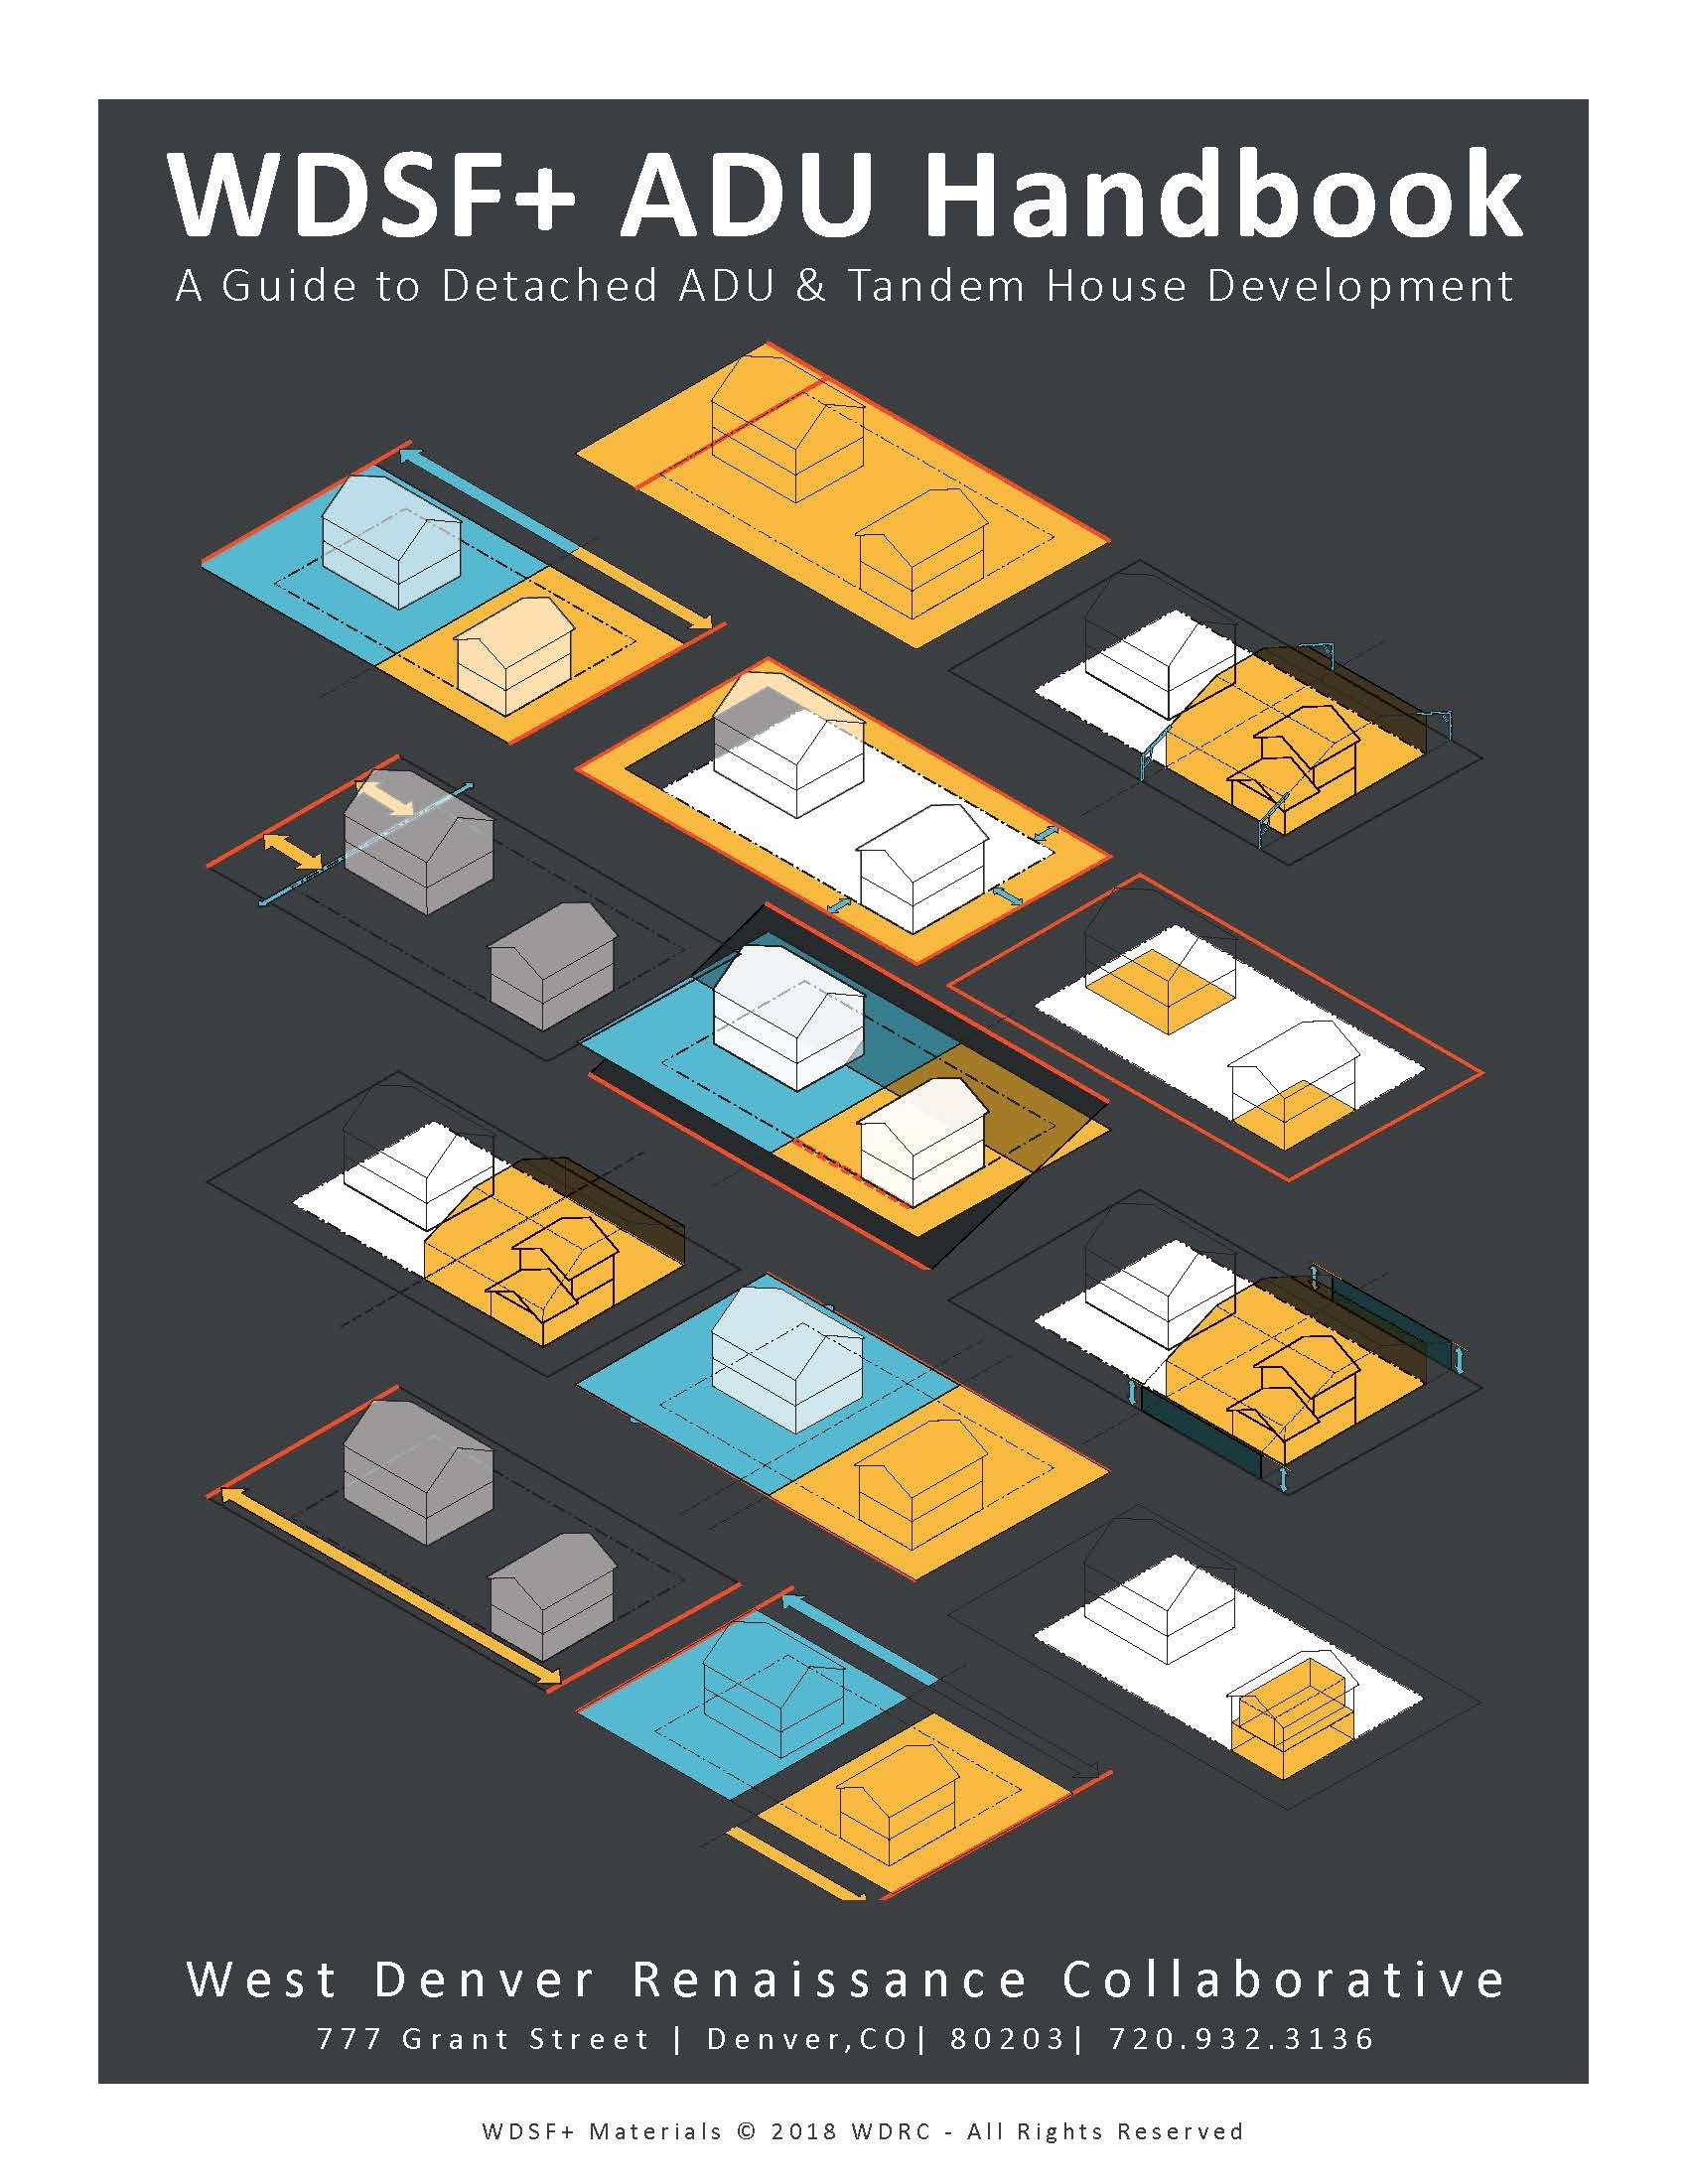 WDSF+ ADU Handbook - The purpose of the WDSF+ ADU Handbook is to explain the basics of building a detached ADU or a tandem house in the City & County of Denver.